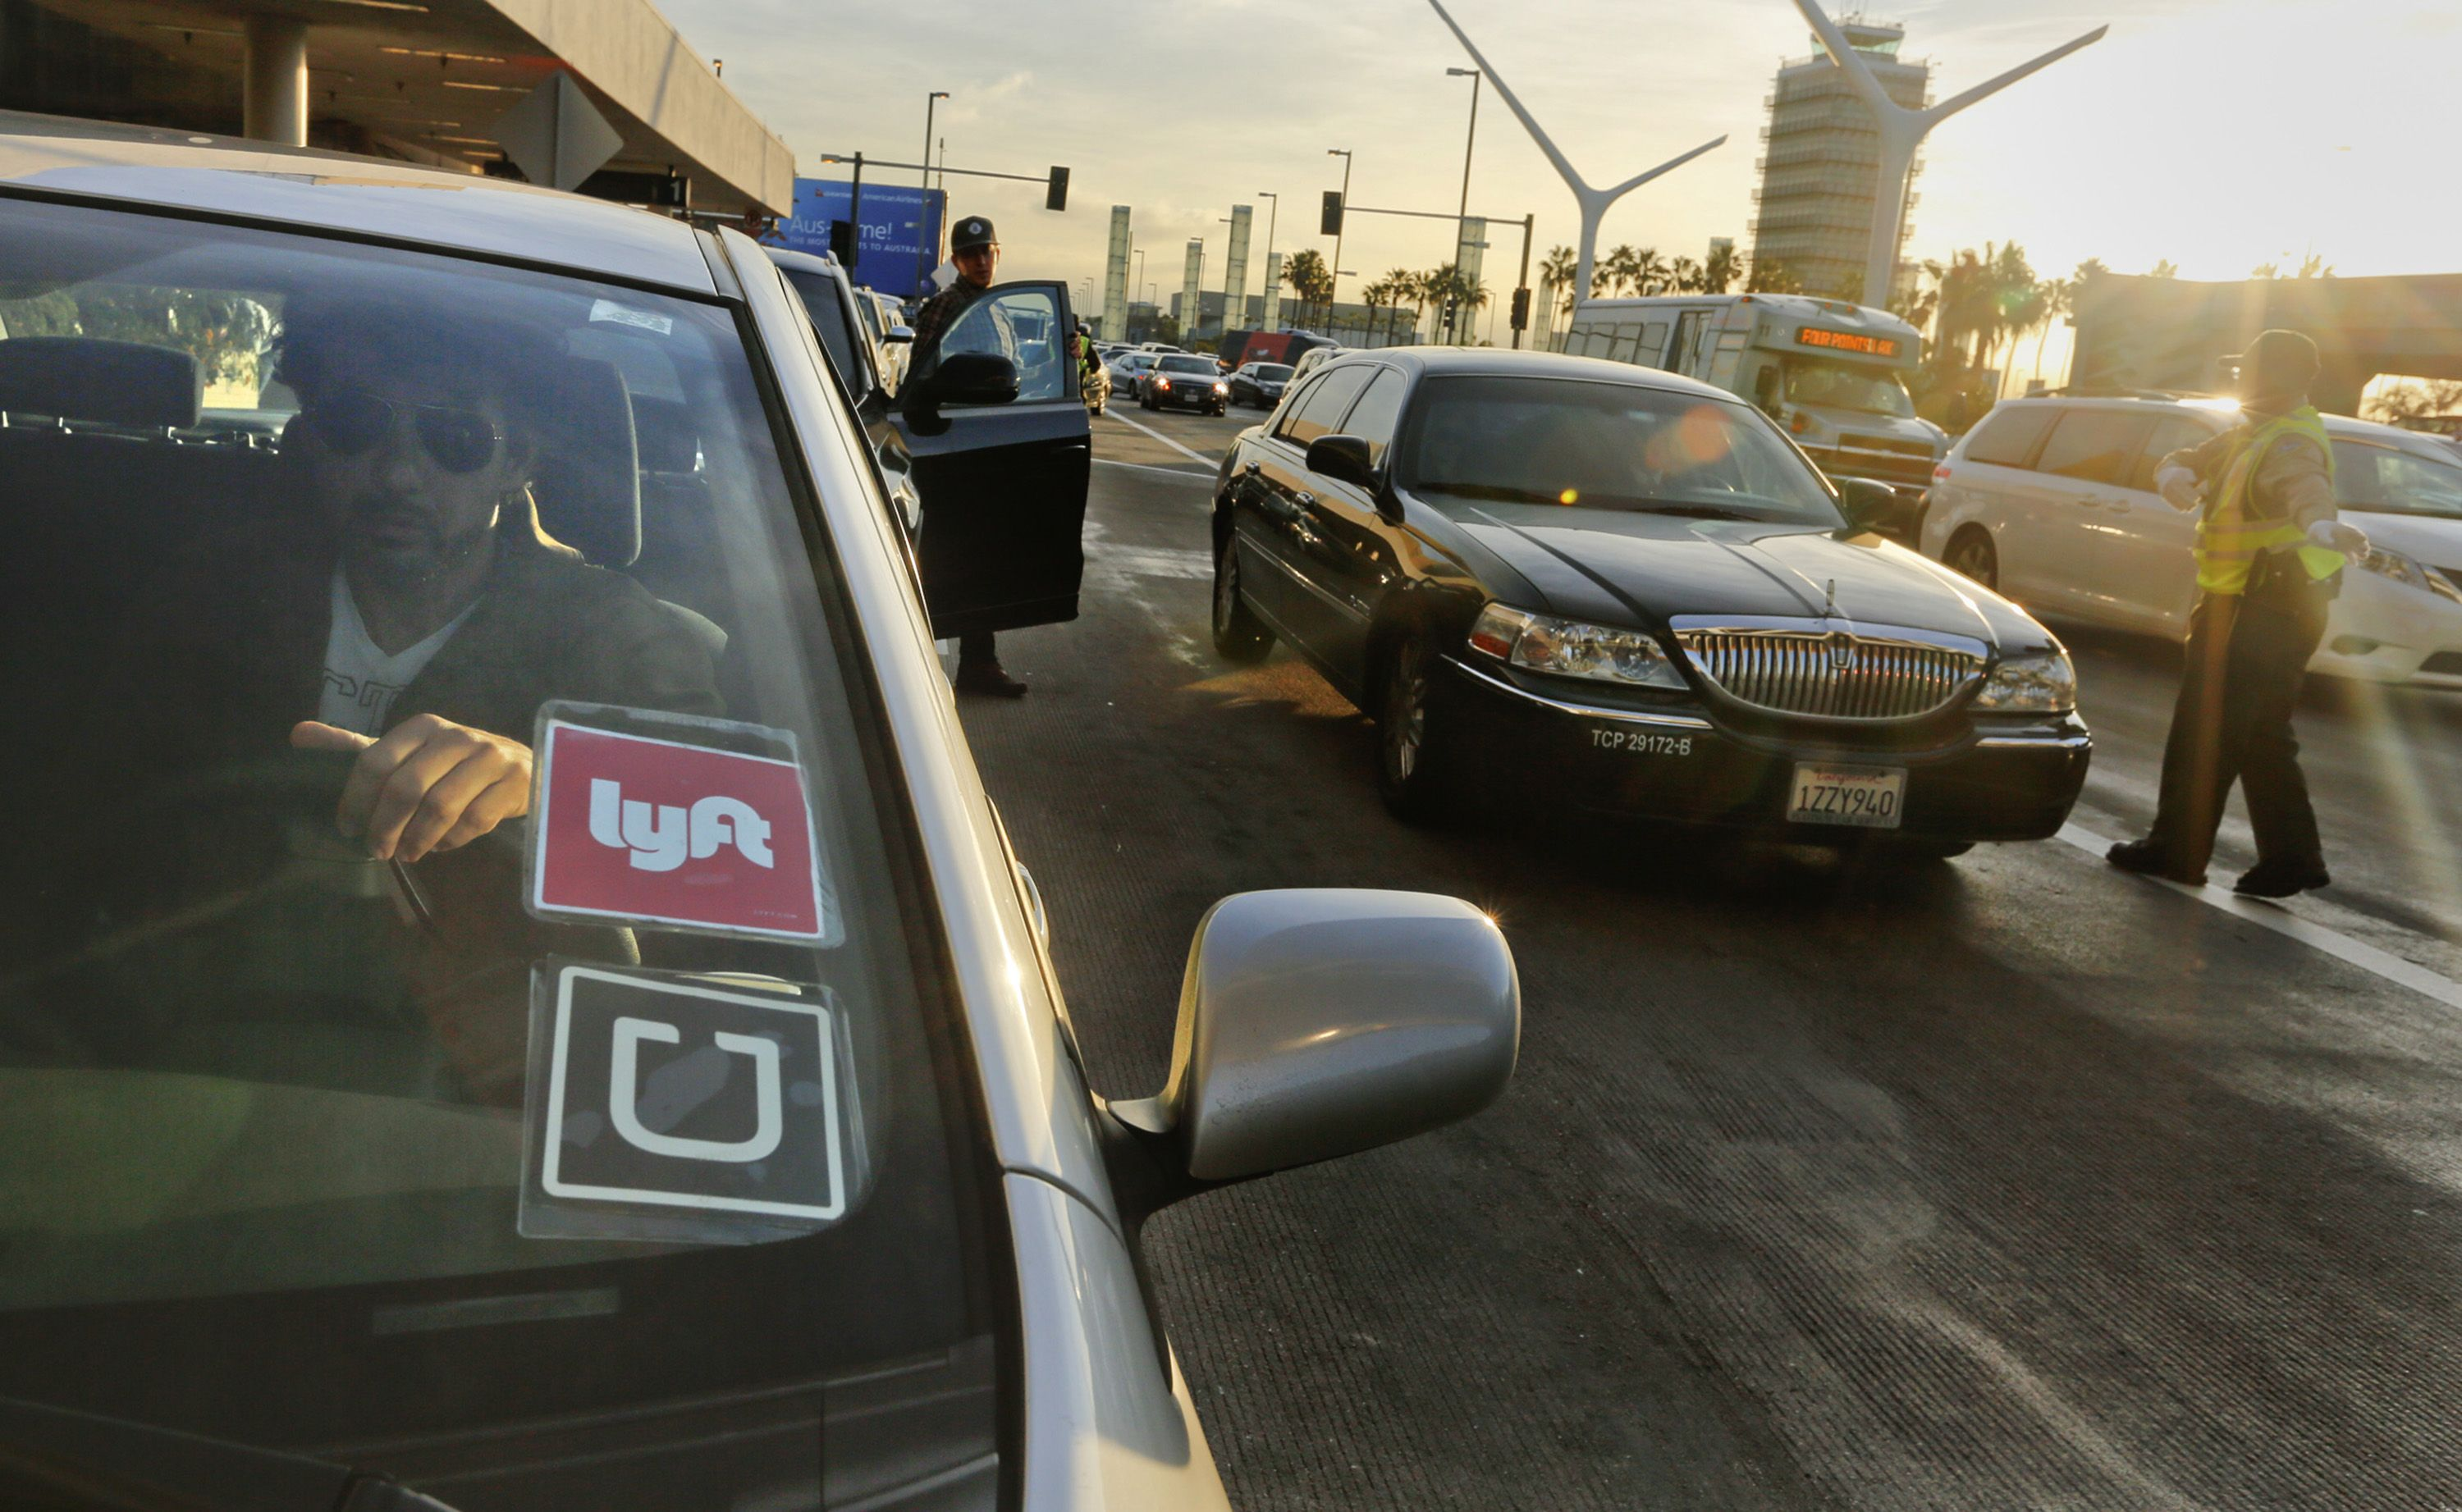 Some states and localities are starting to tax ride-hailing services such as Uber and Lyft, a sign governments seek to overhaul their tax structures in response to a rapidly changing economy. (Mark Boster/Los Angeles Times/TNS)